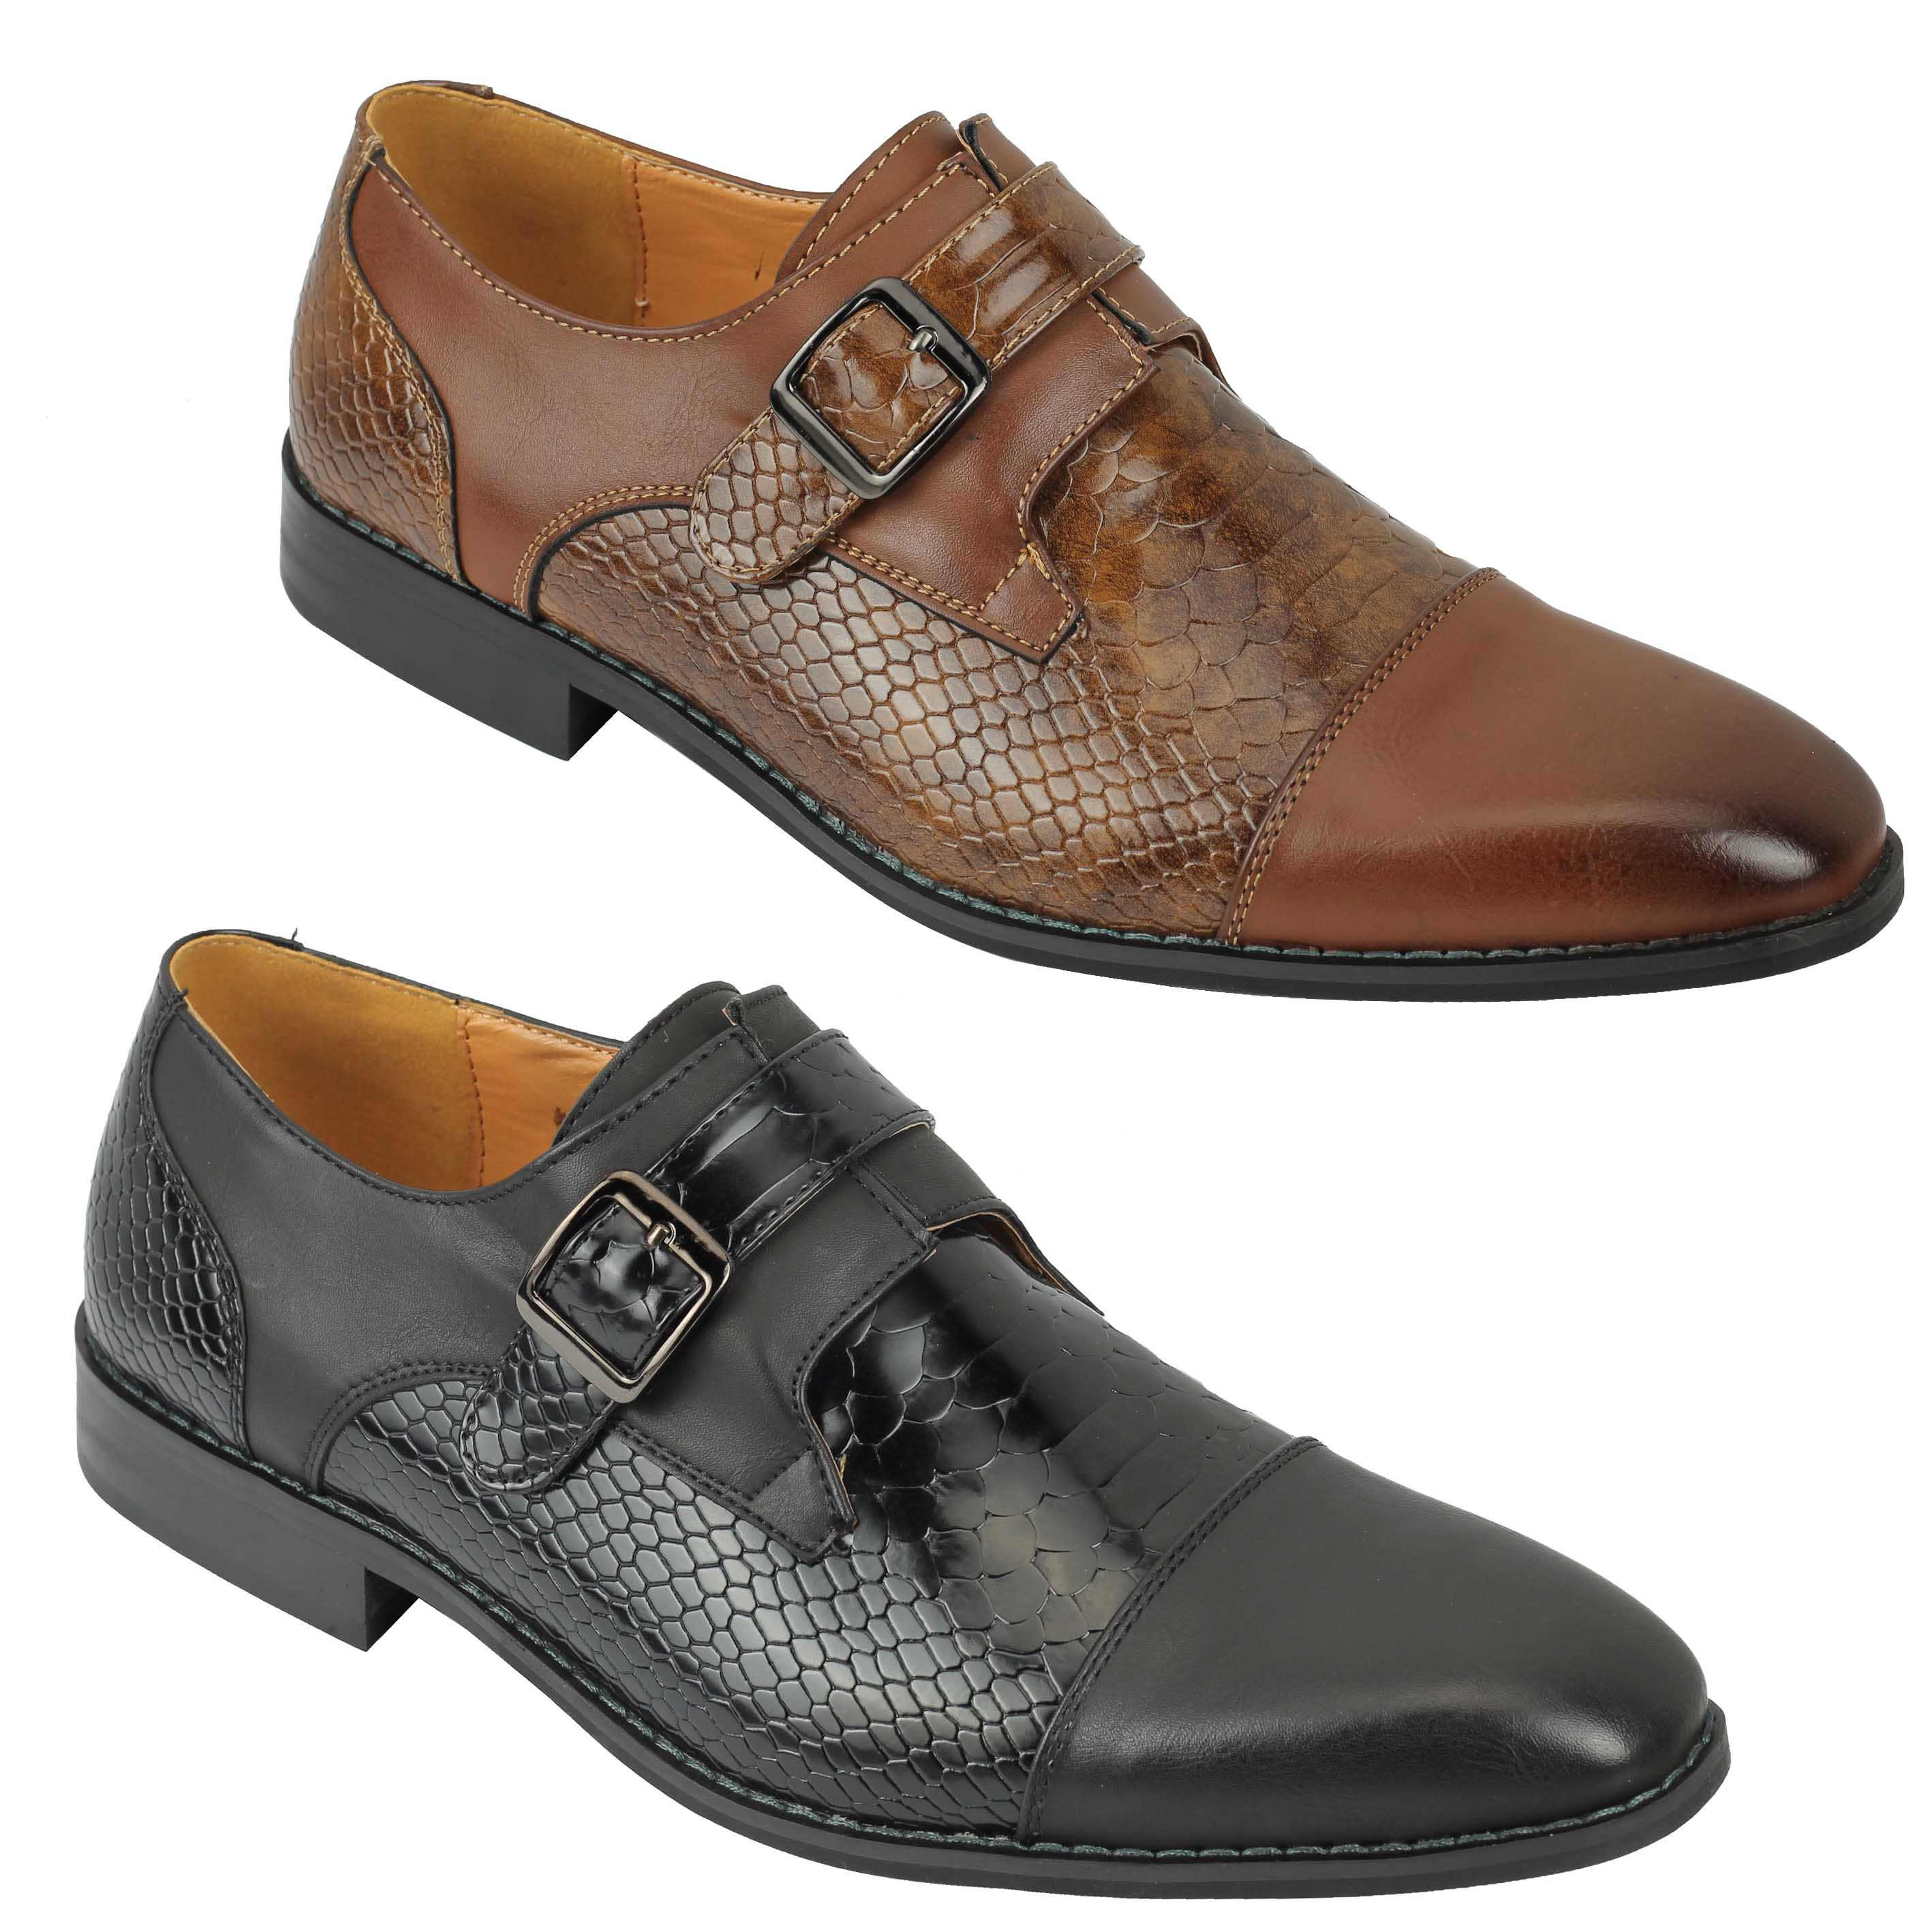 Mens Black Brown Shiny Leather Snakeskin Effect Vintage Smart Casual Wedding Party Slip on Shoes